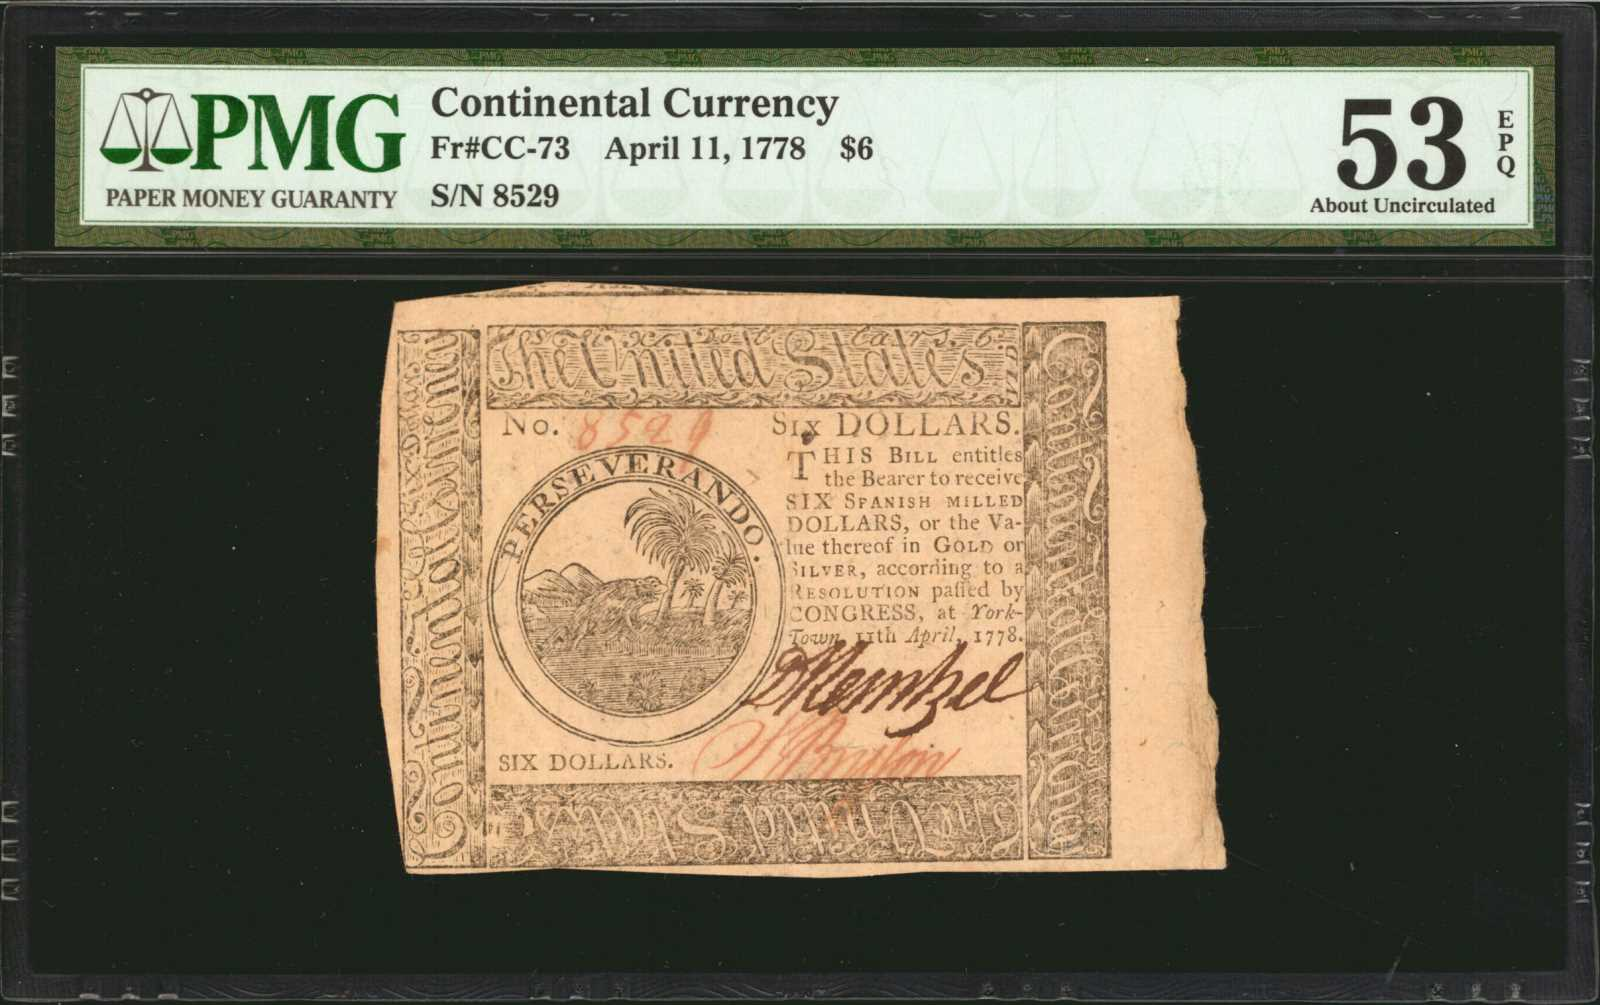 sample image for 1778 $6 CC73 Yorktown